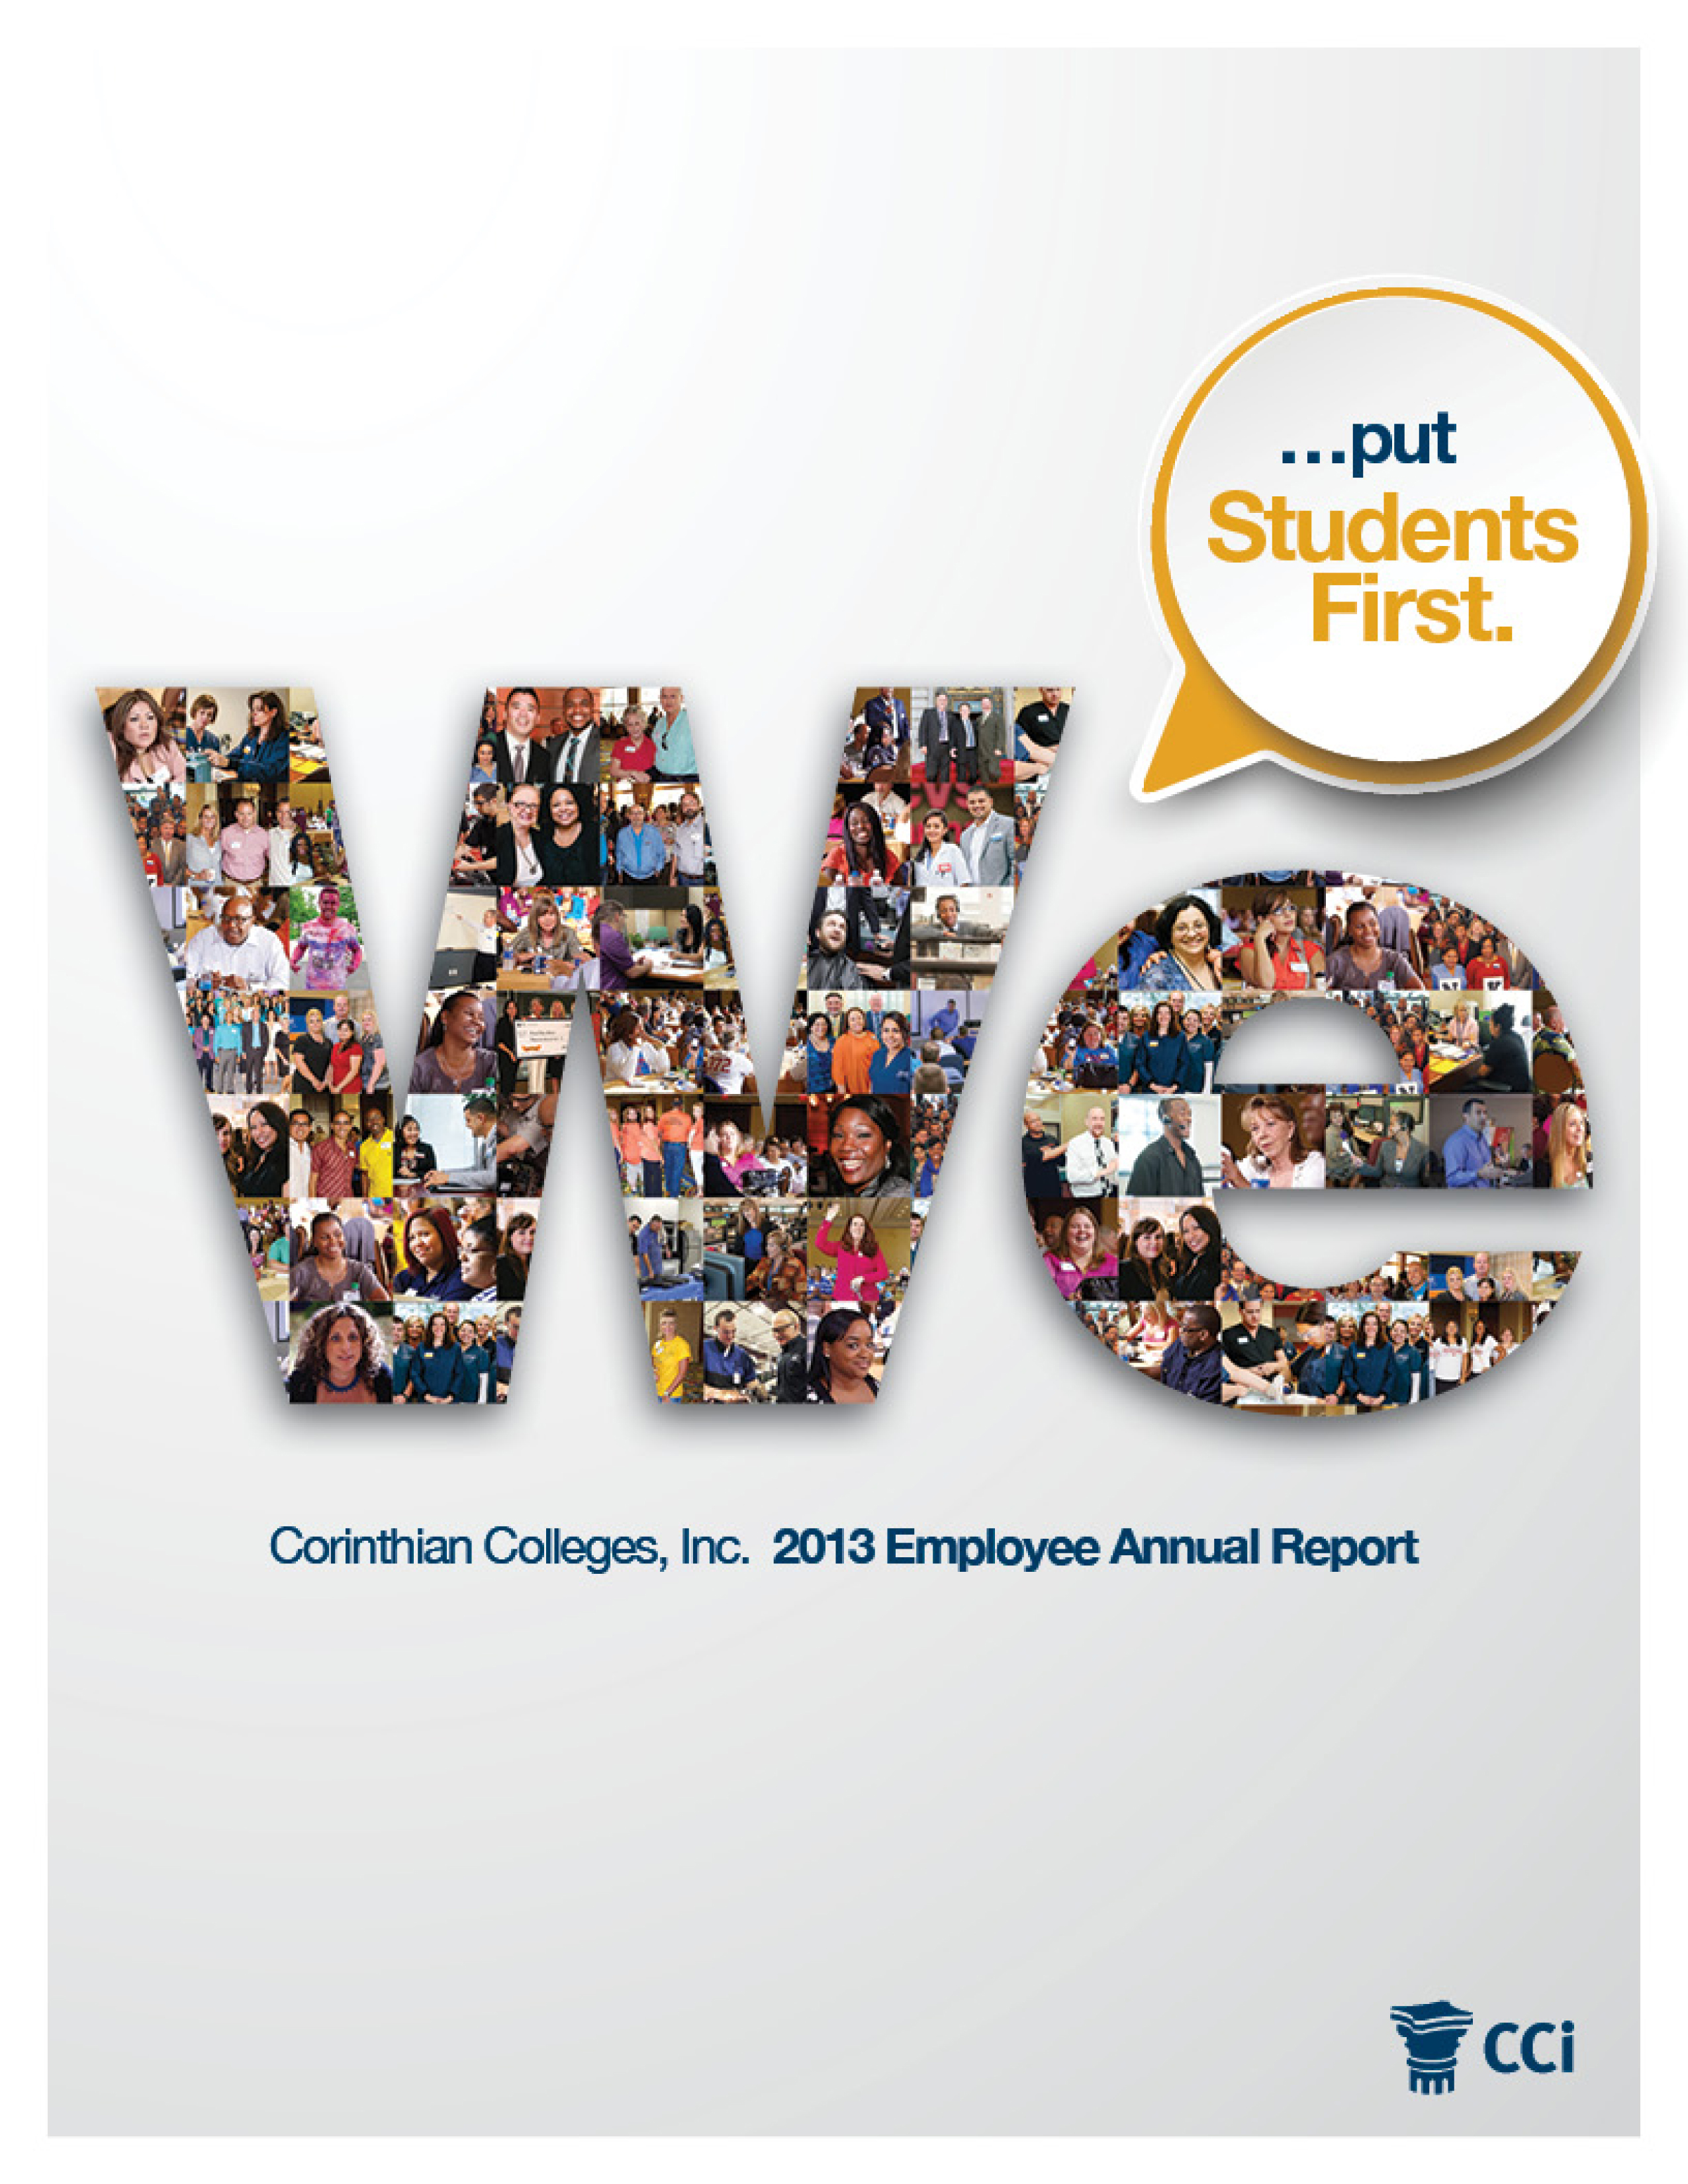 Corinthian Colleges' Employee Annual Report for 2013_cover